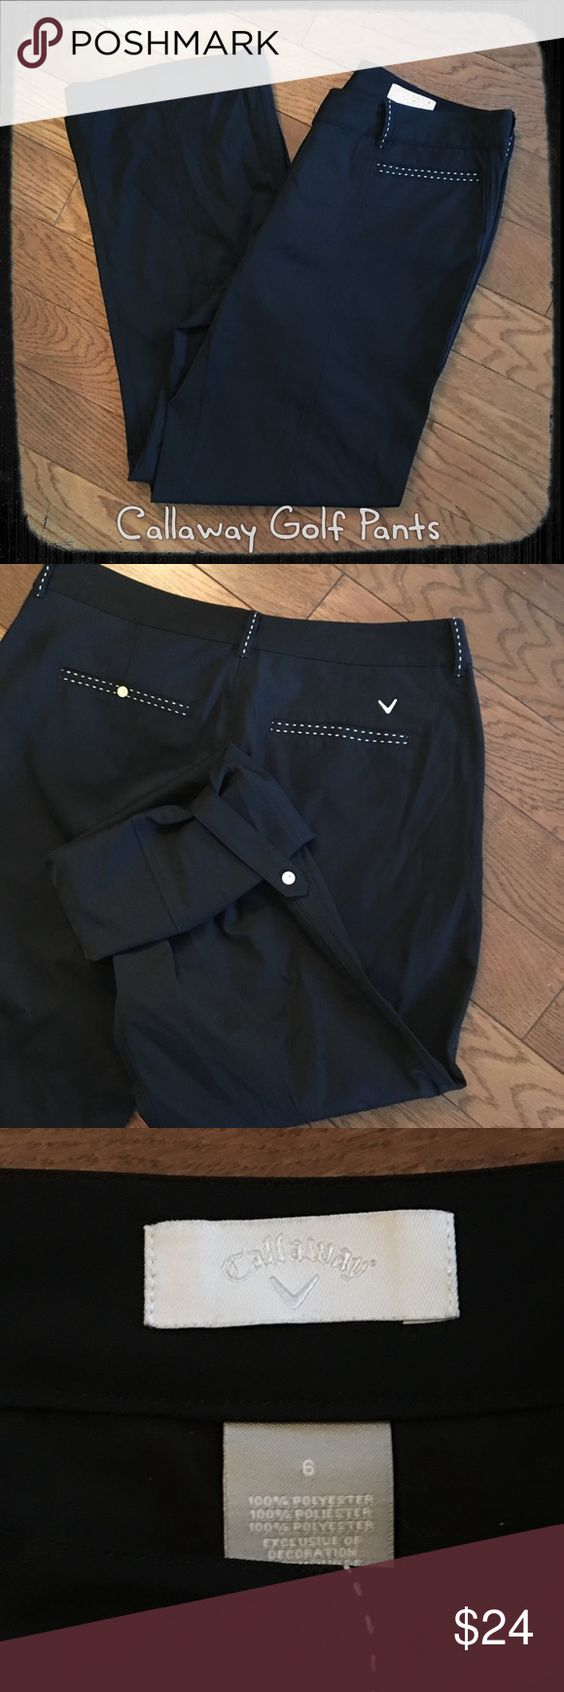 Women's Callaway Golf Pants ⛳️ Women's Black full length Callaway golf pants, size 6, never worn. They have the buttons to turn them up for Capri length. Callaway Pants